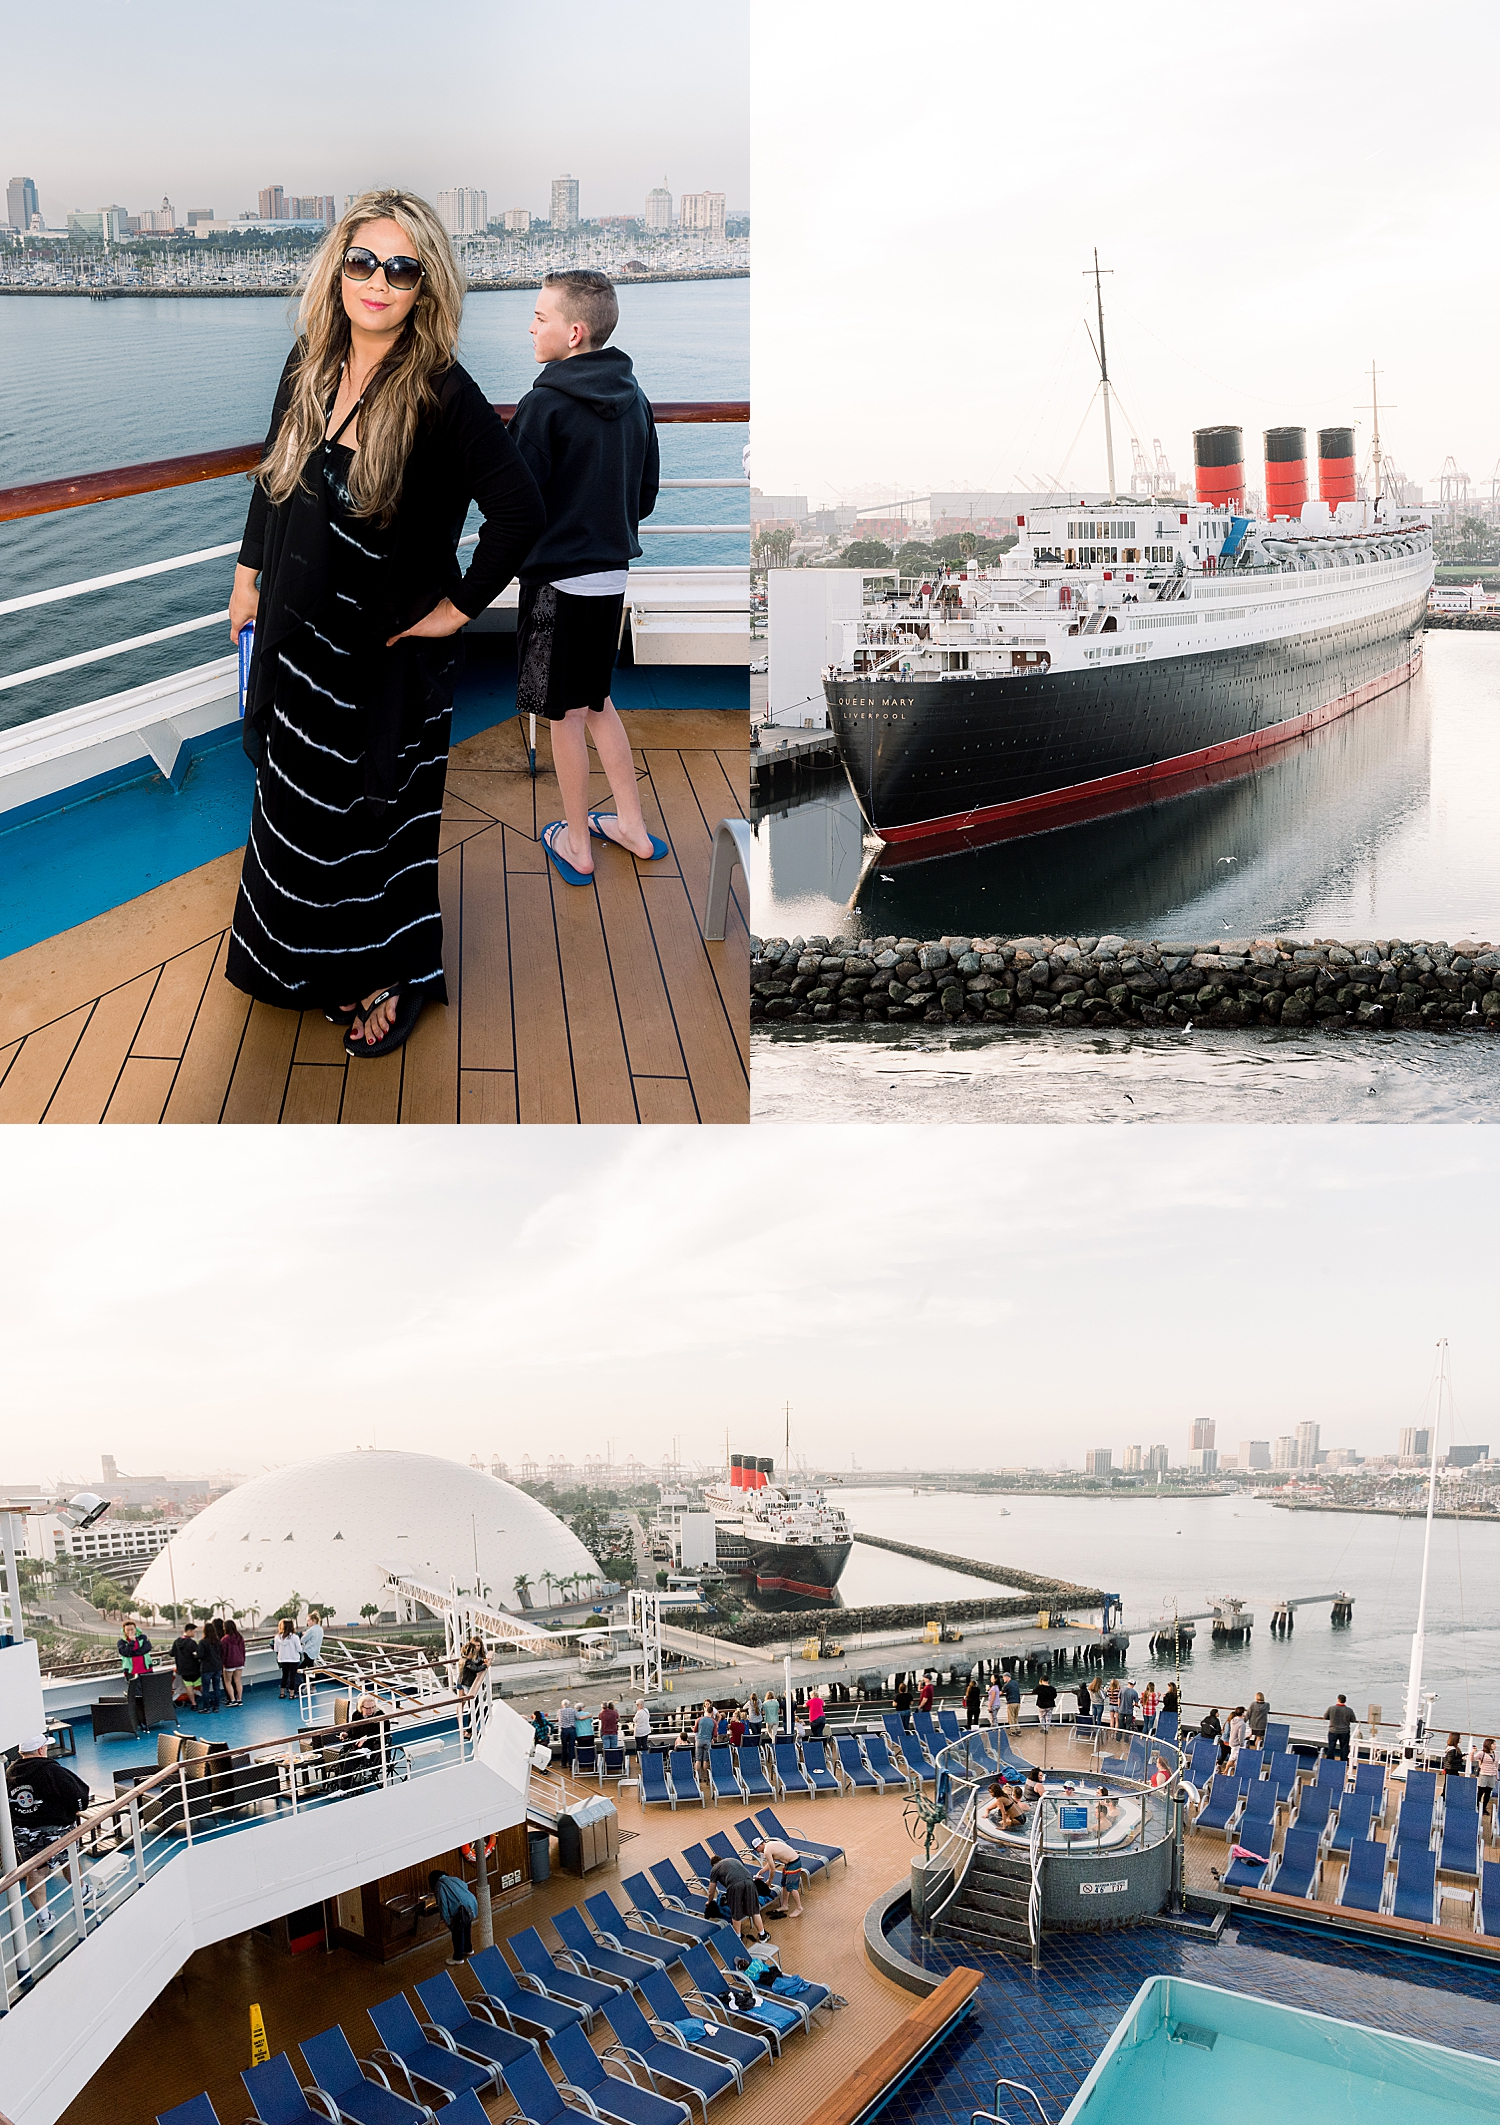 TOP LEFT: Me, with the Long Beach skyline in the background.  TOP RIGHT: The Queen Mary. She is open for tours, and you can even book rooms to stay there if you're brave enough to encounter the spirits of the ship.  BOTTOM: View from the ship (Deck 10) of the Queen Mary and the Long Beach skyline.